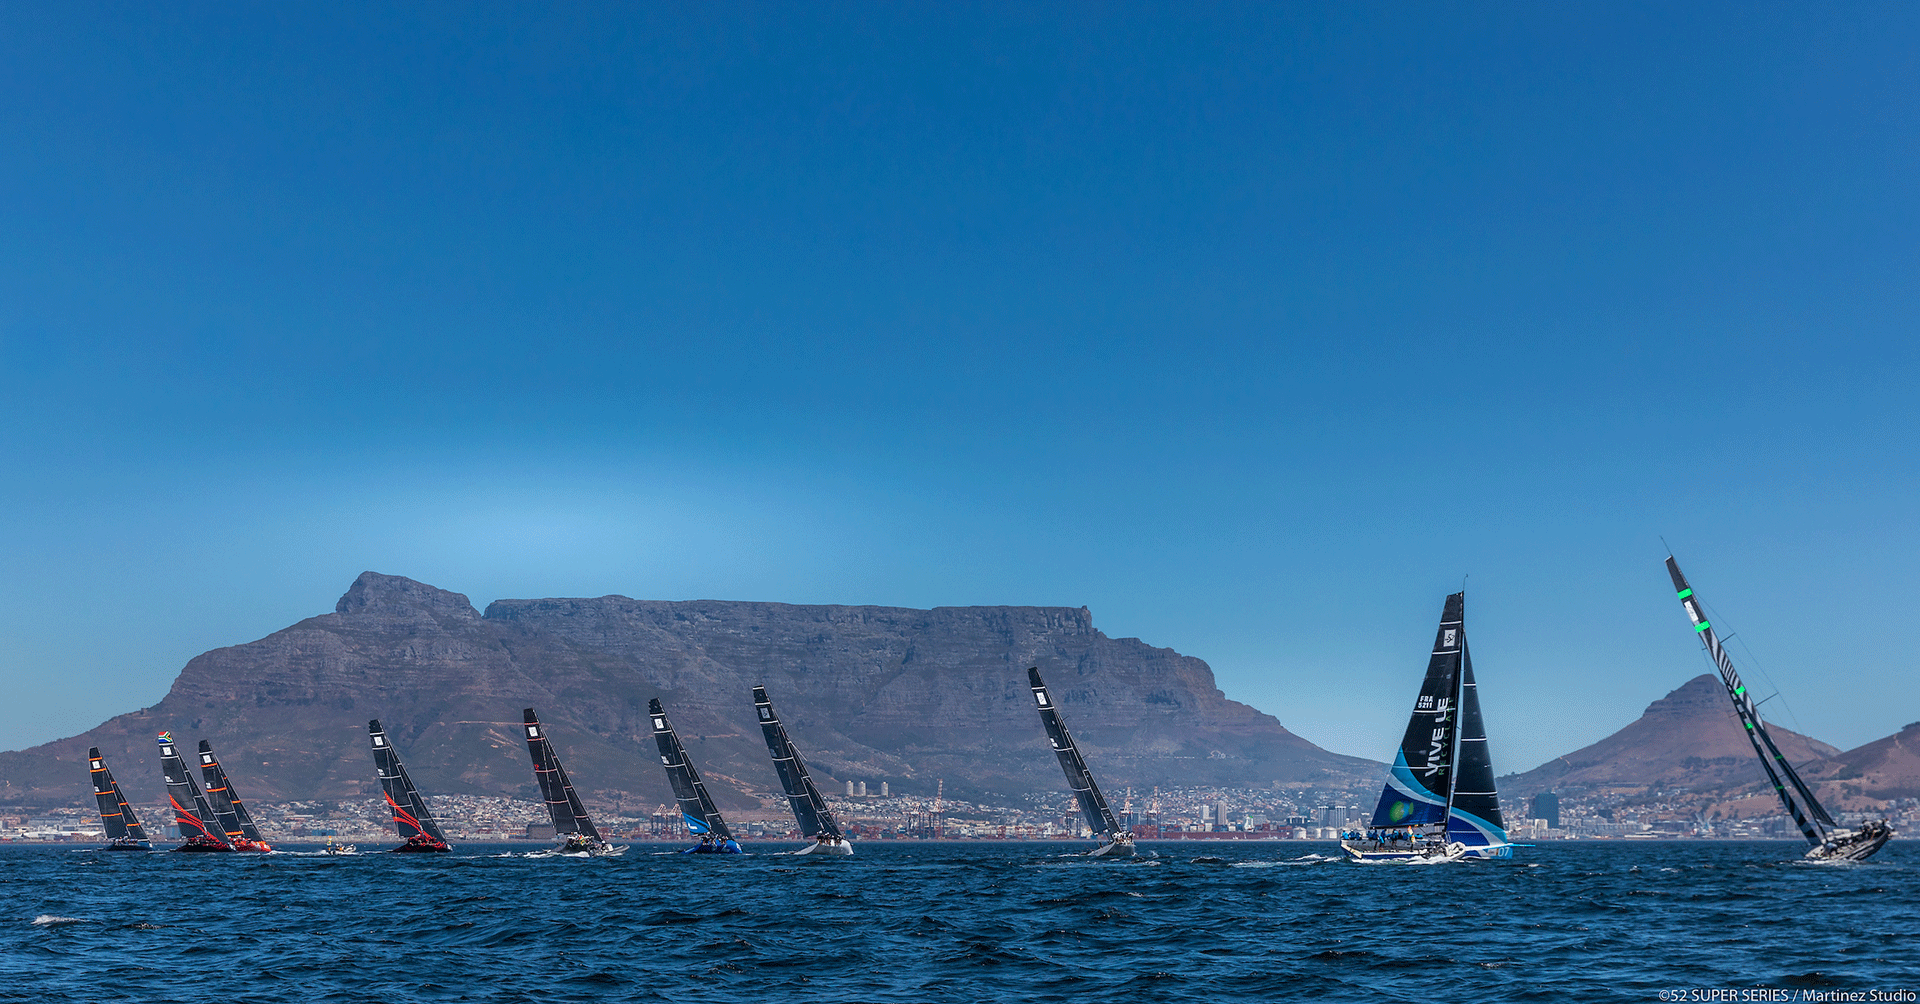 The 52 SUPER SERIES Sets Its 2020 Vision for Sustainability. Credit: Nico Martinez | 52 SUPER SERIES